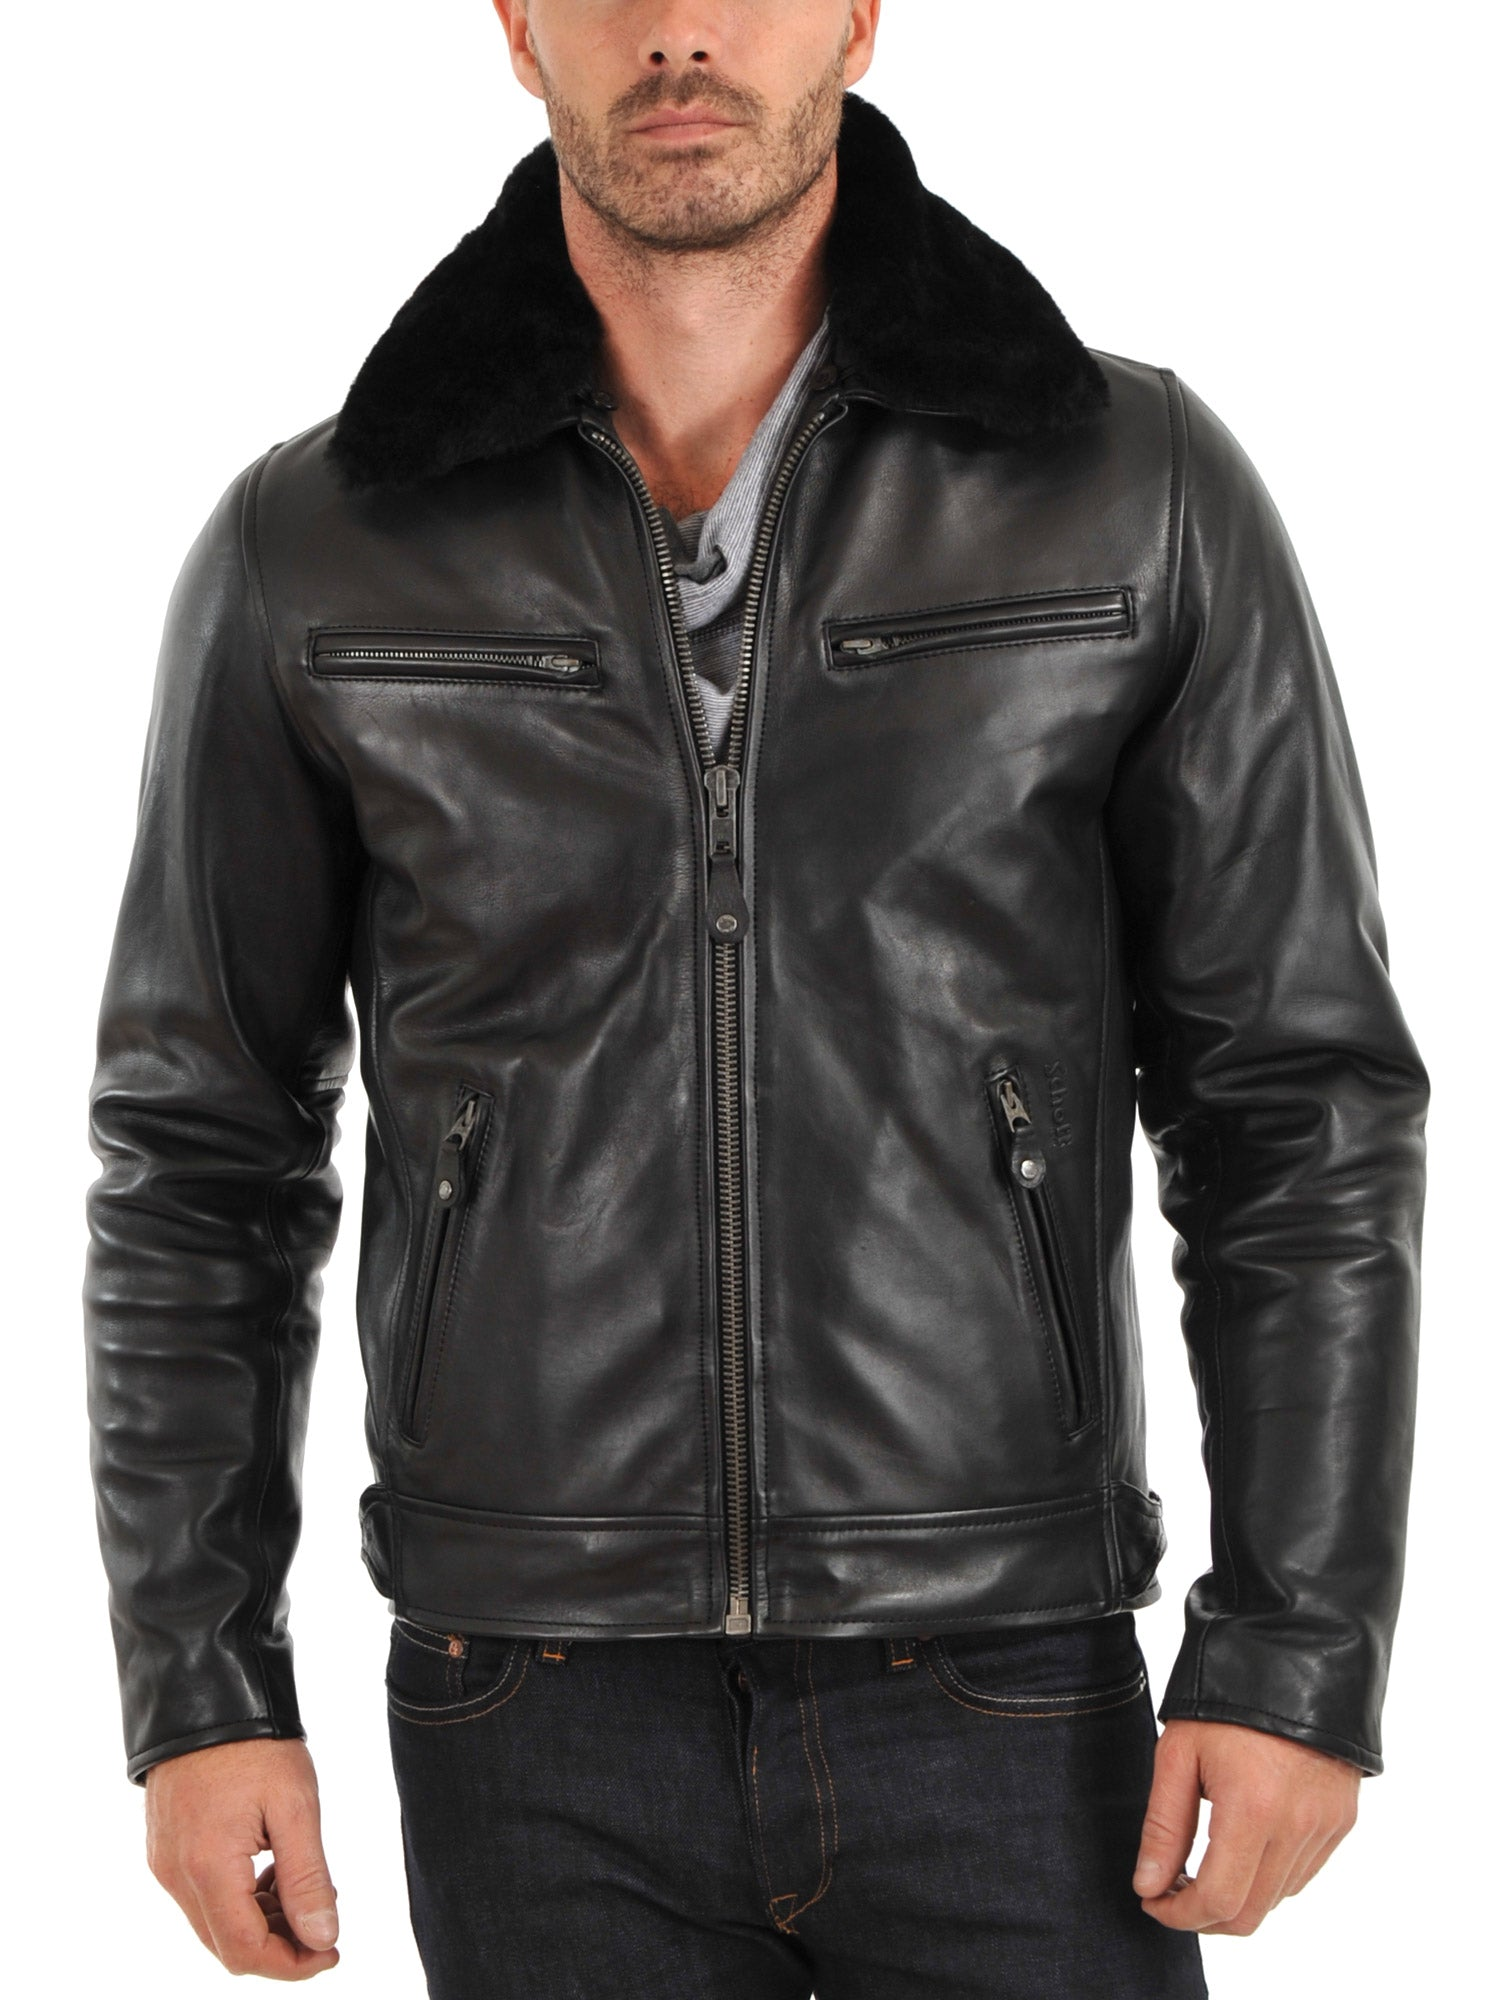 men's black leather jacket with zippers and fur collar